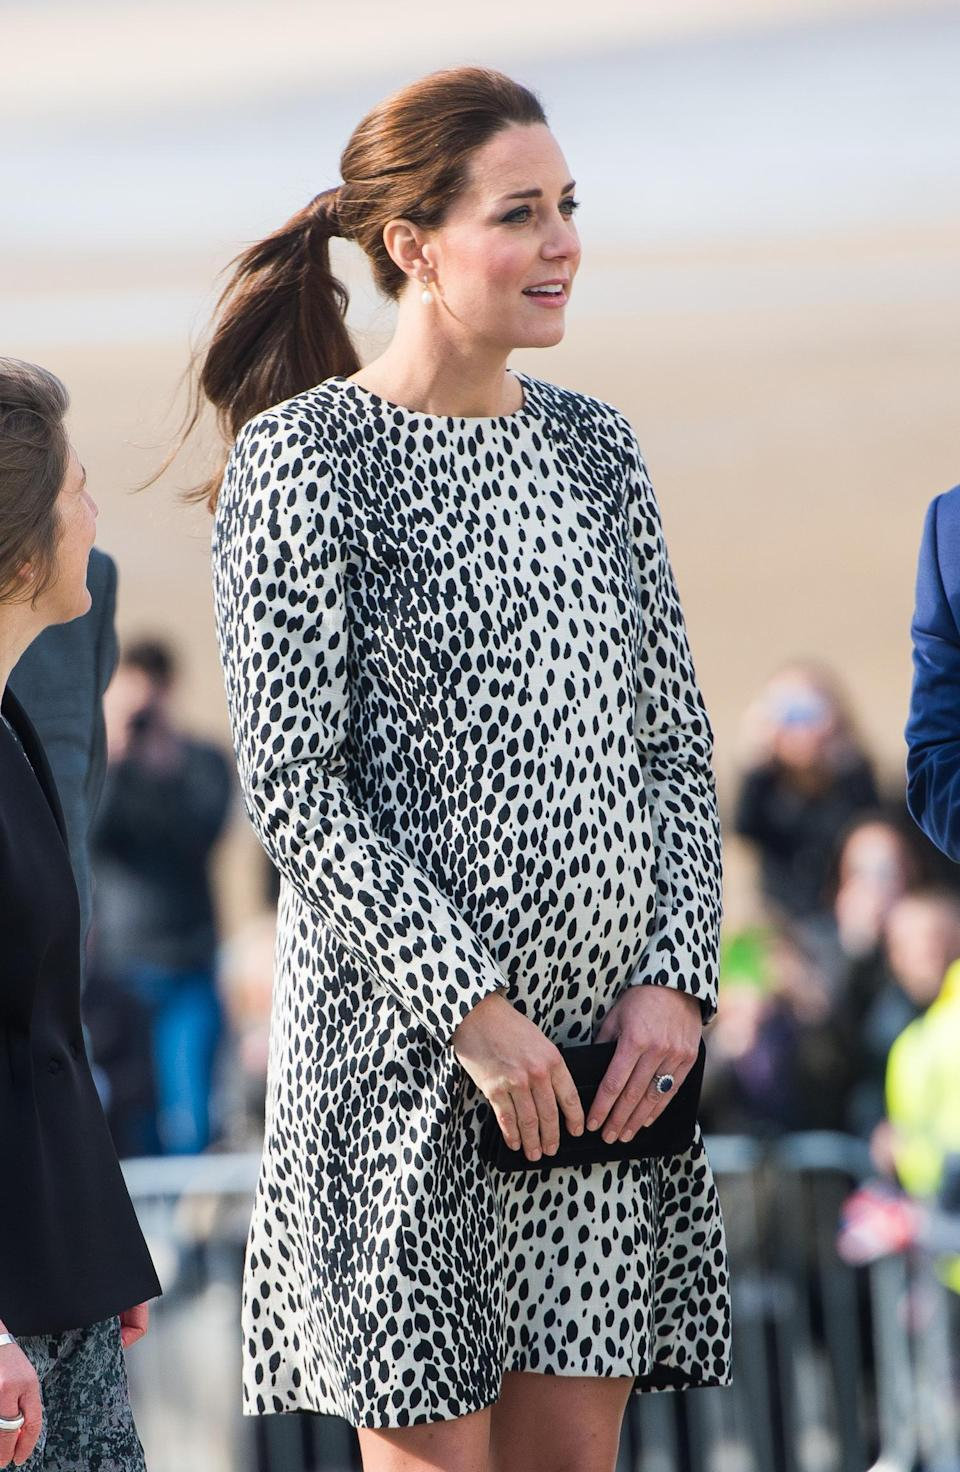 <p>Catherine, Duchess of Cambridge, visits the Turner Contemporary Gallery wearing a leopard-print dress on March 11, 2015, in Margate, England. (Photo: Getty Images) </p>